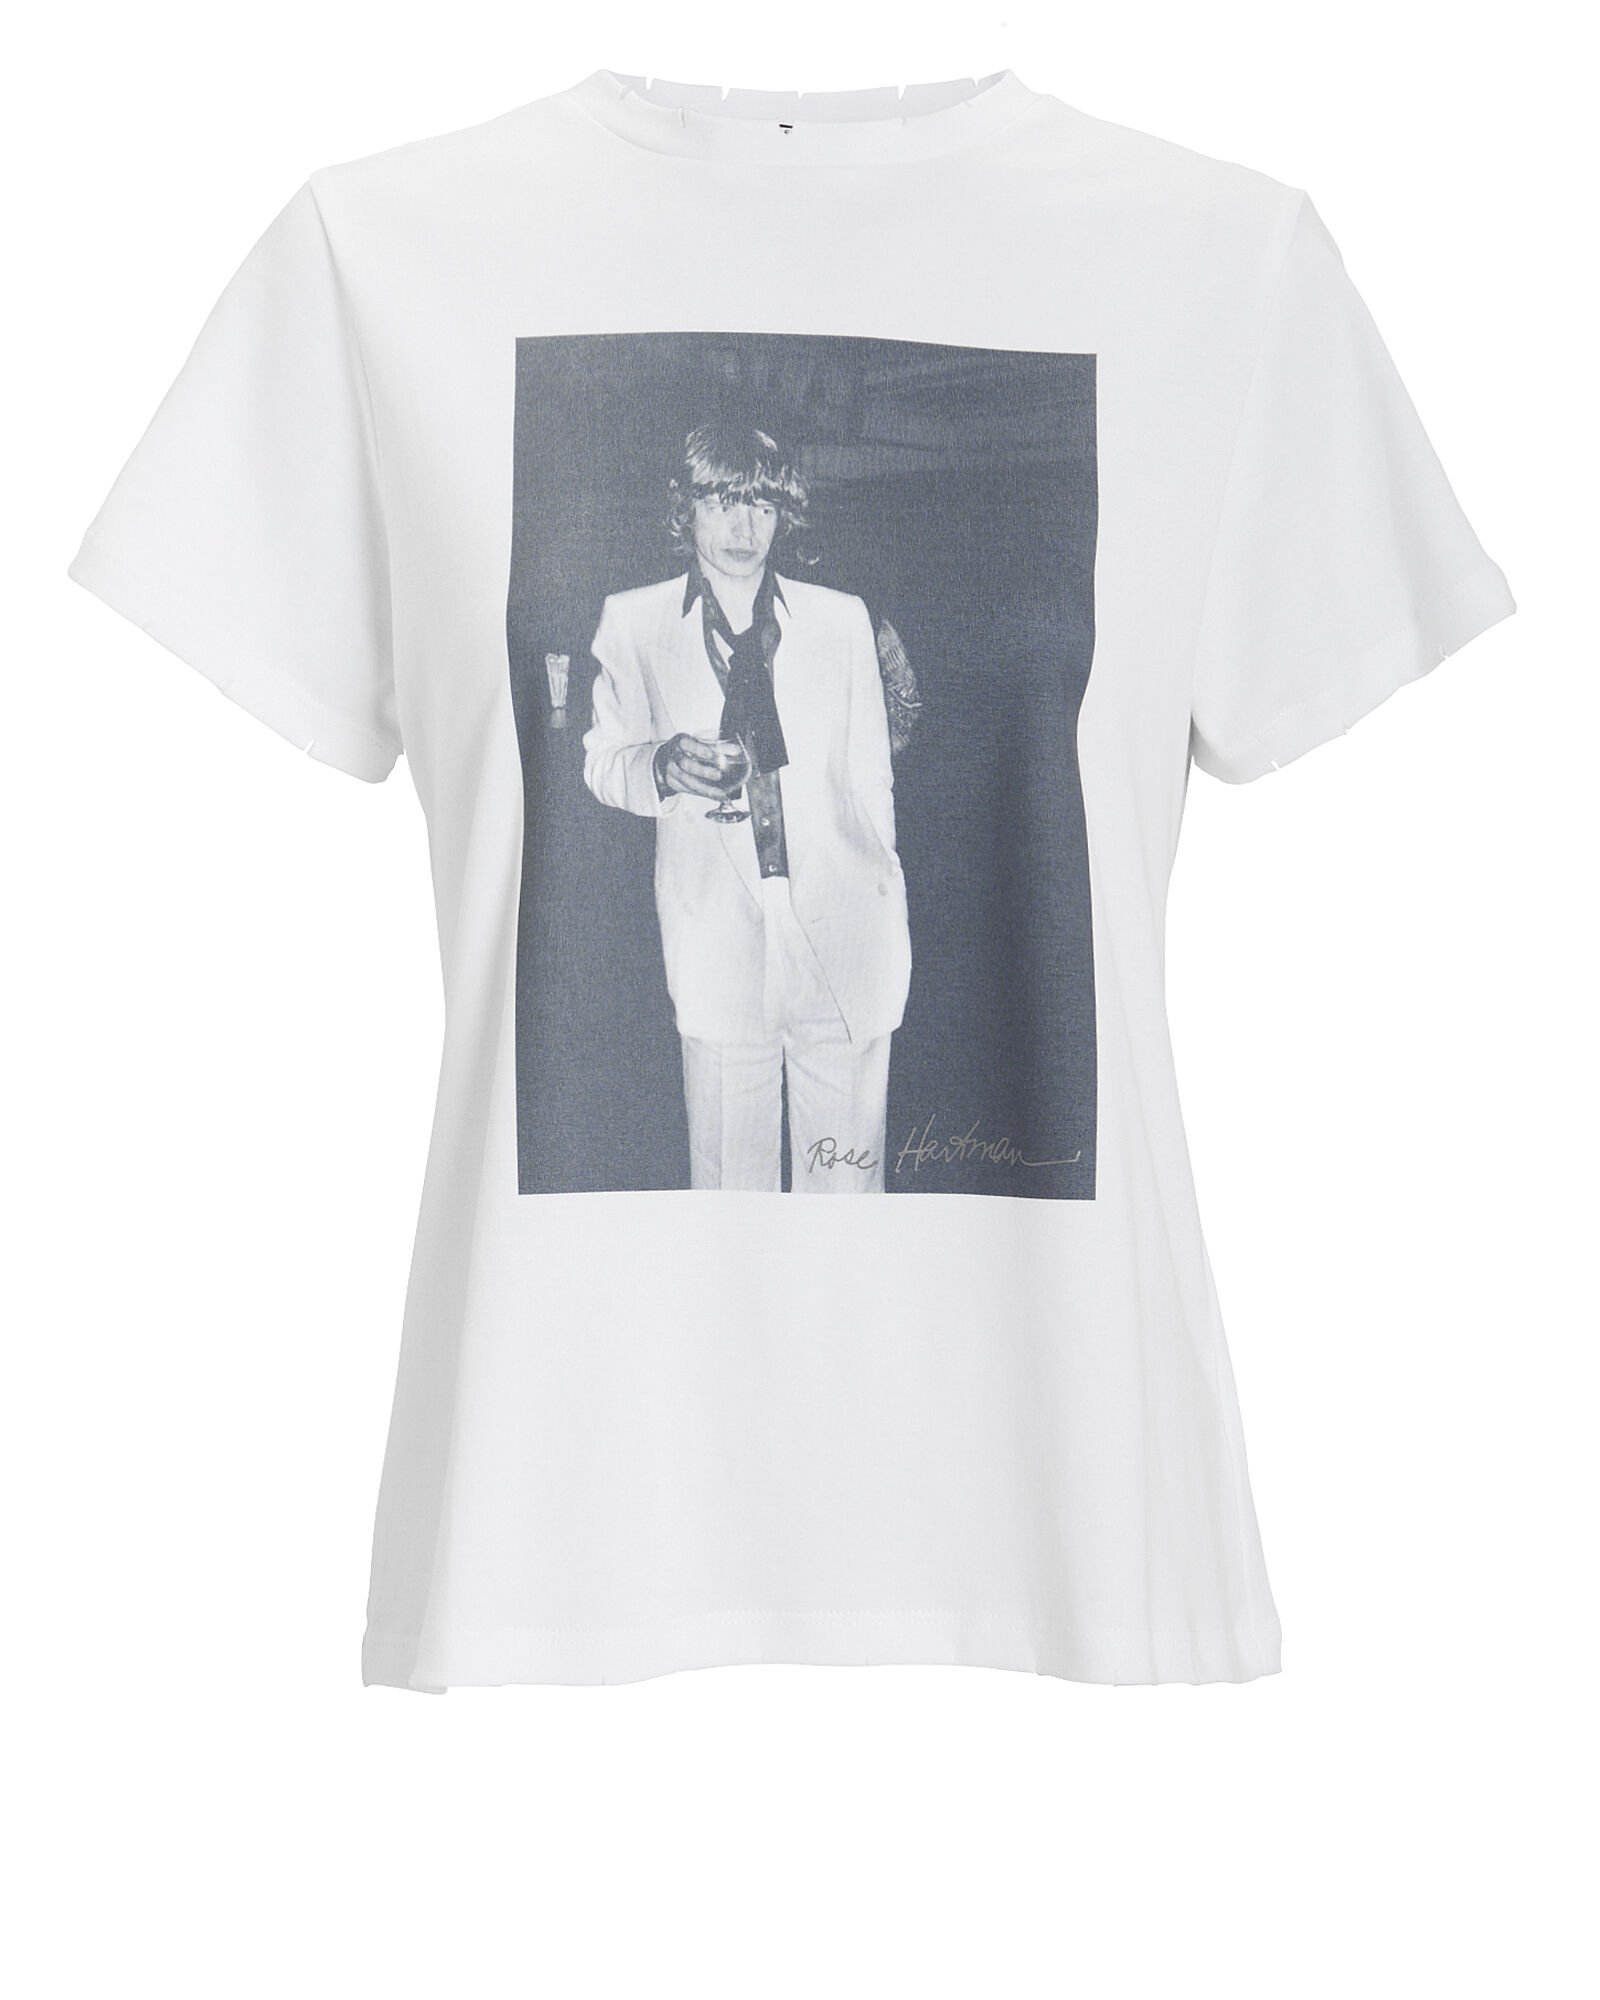 Mick Jagger T-Shirt, WHITE, hi-res